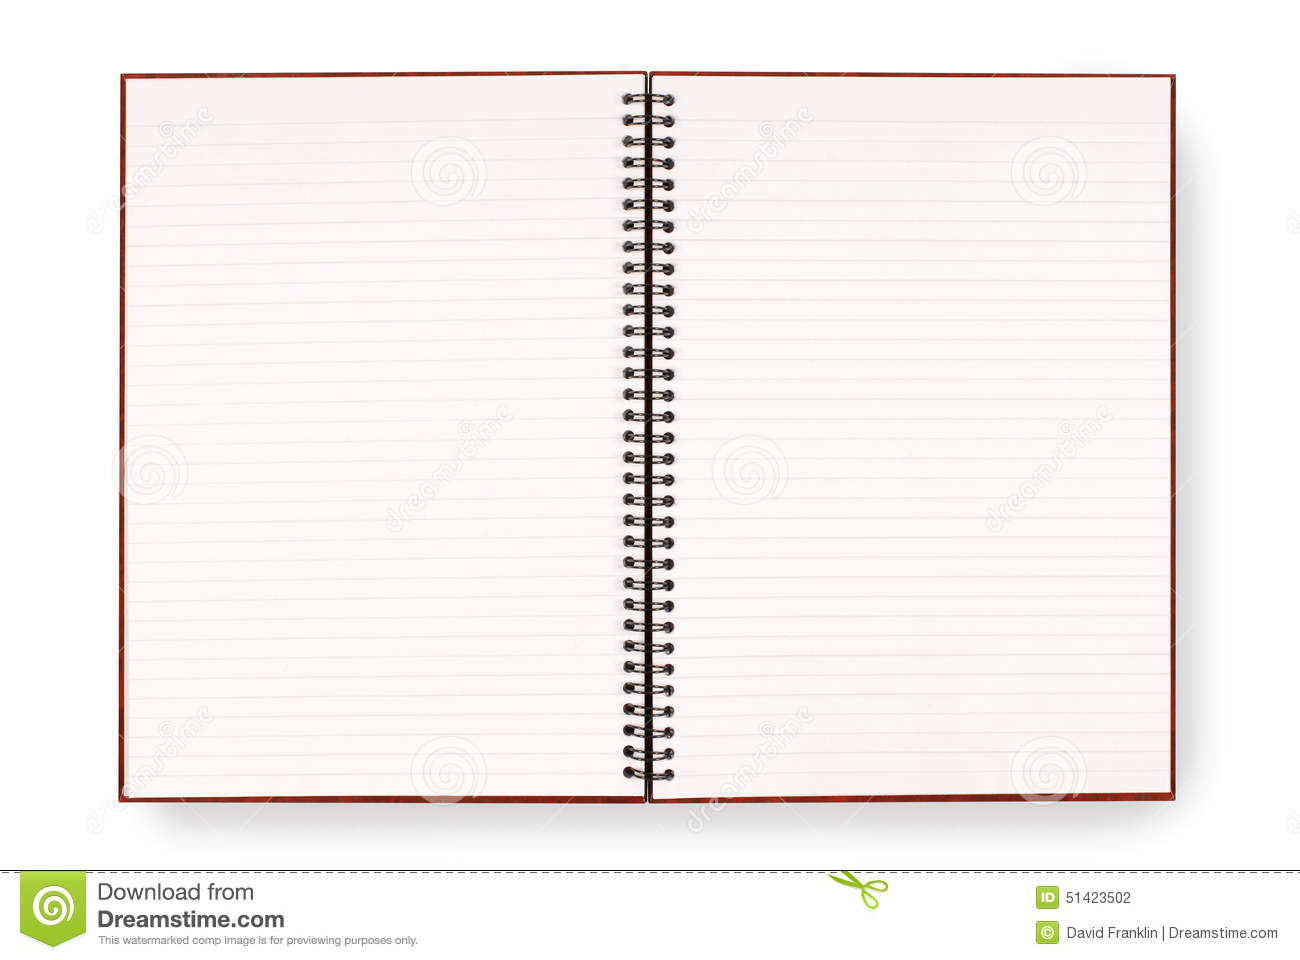 Blank Open Spiral Writing Book Or Notepad, Lined Paper, Isolated On White  Background  Free Lined Printable Paper